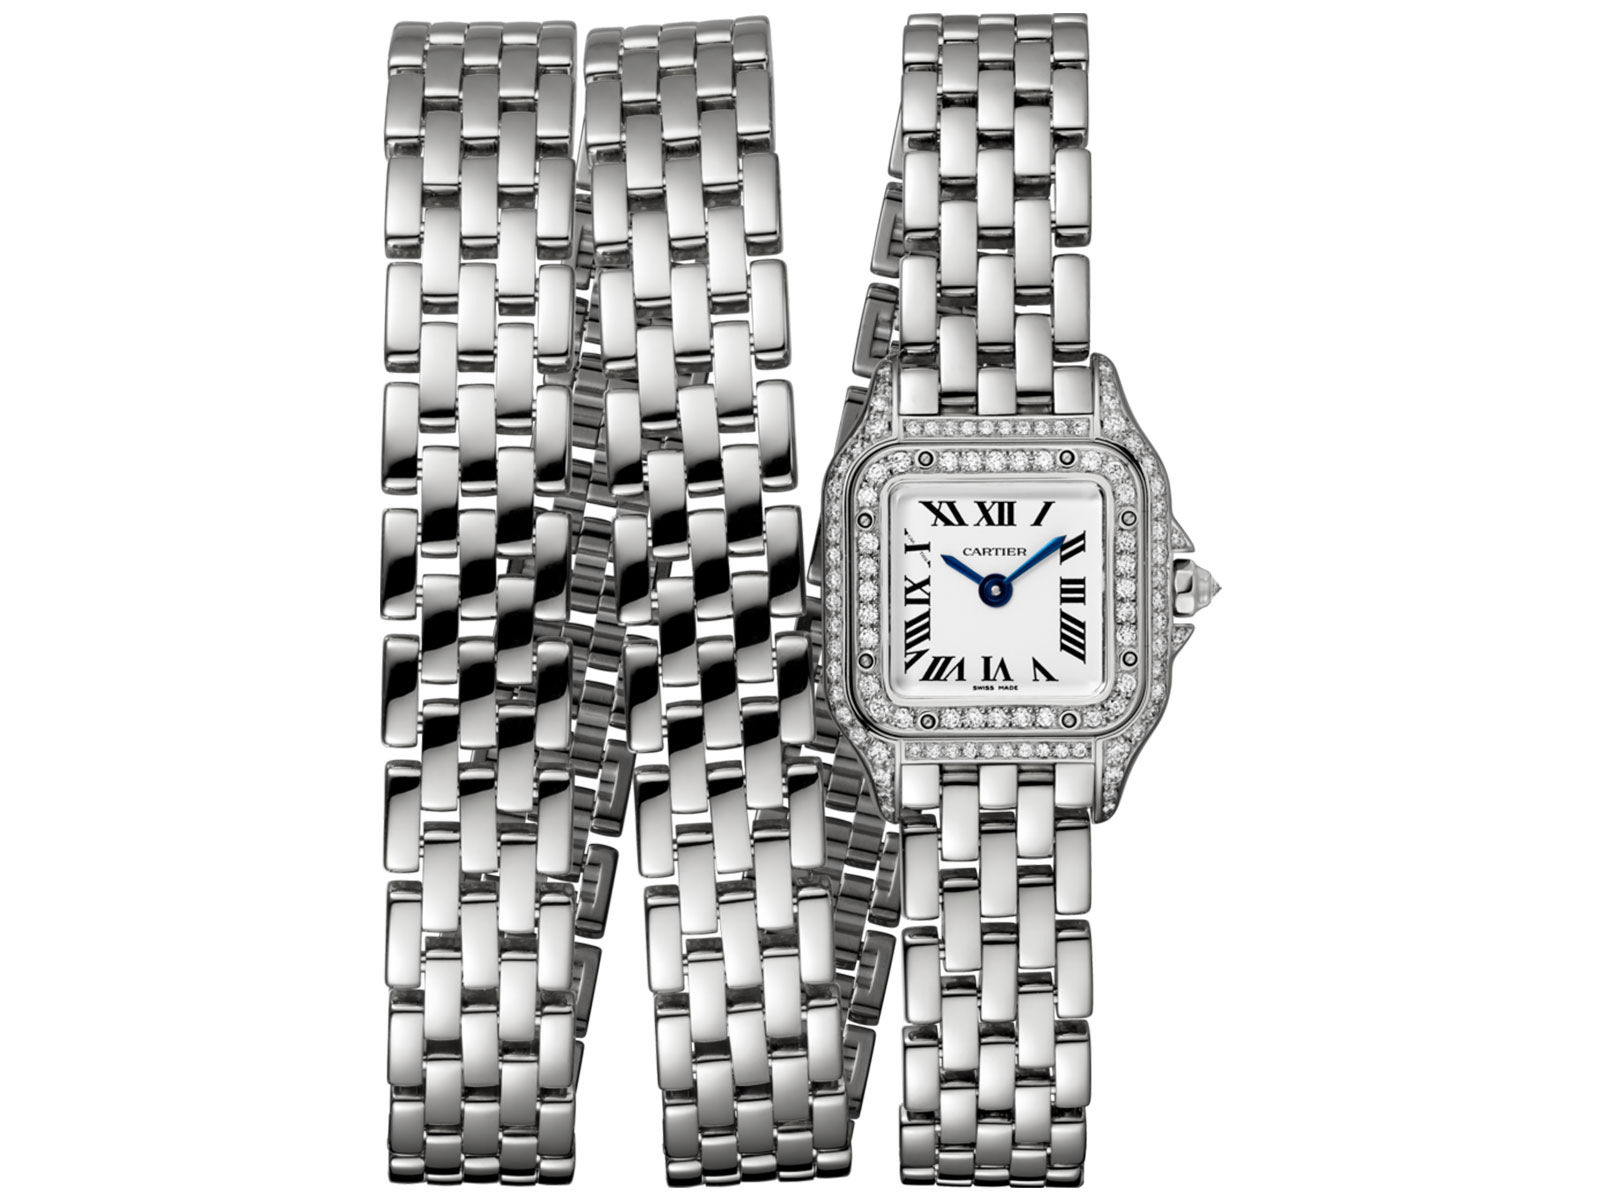 WJPN0011-Panthere-de-Cartier-Watch-Collection.jpg